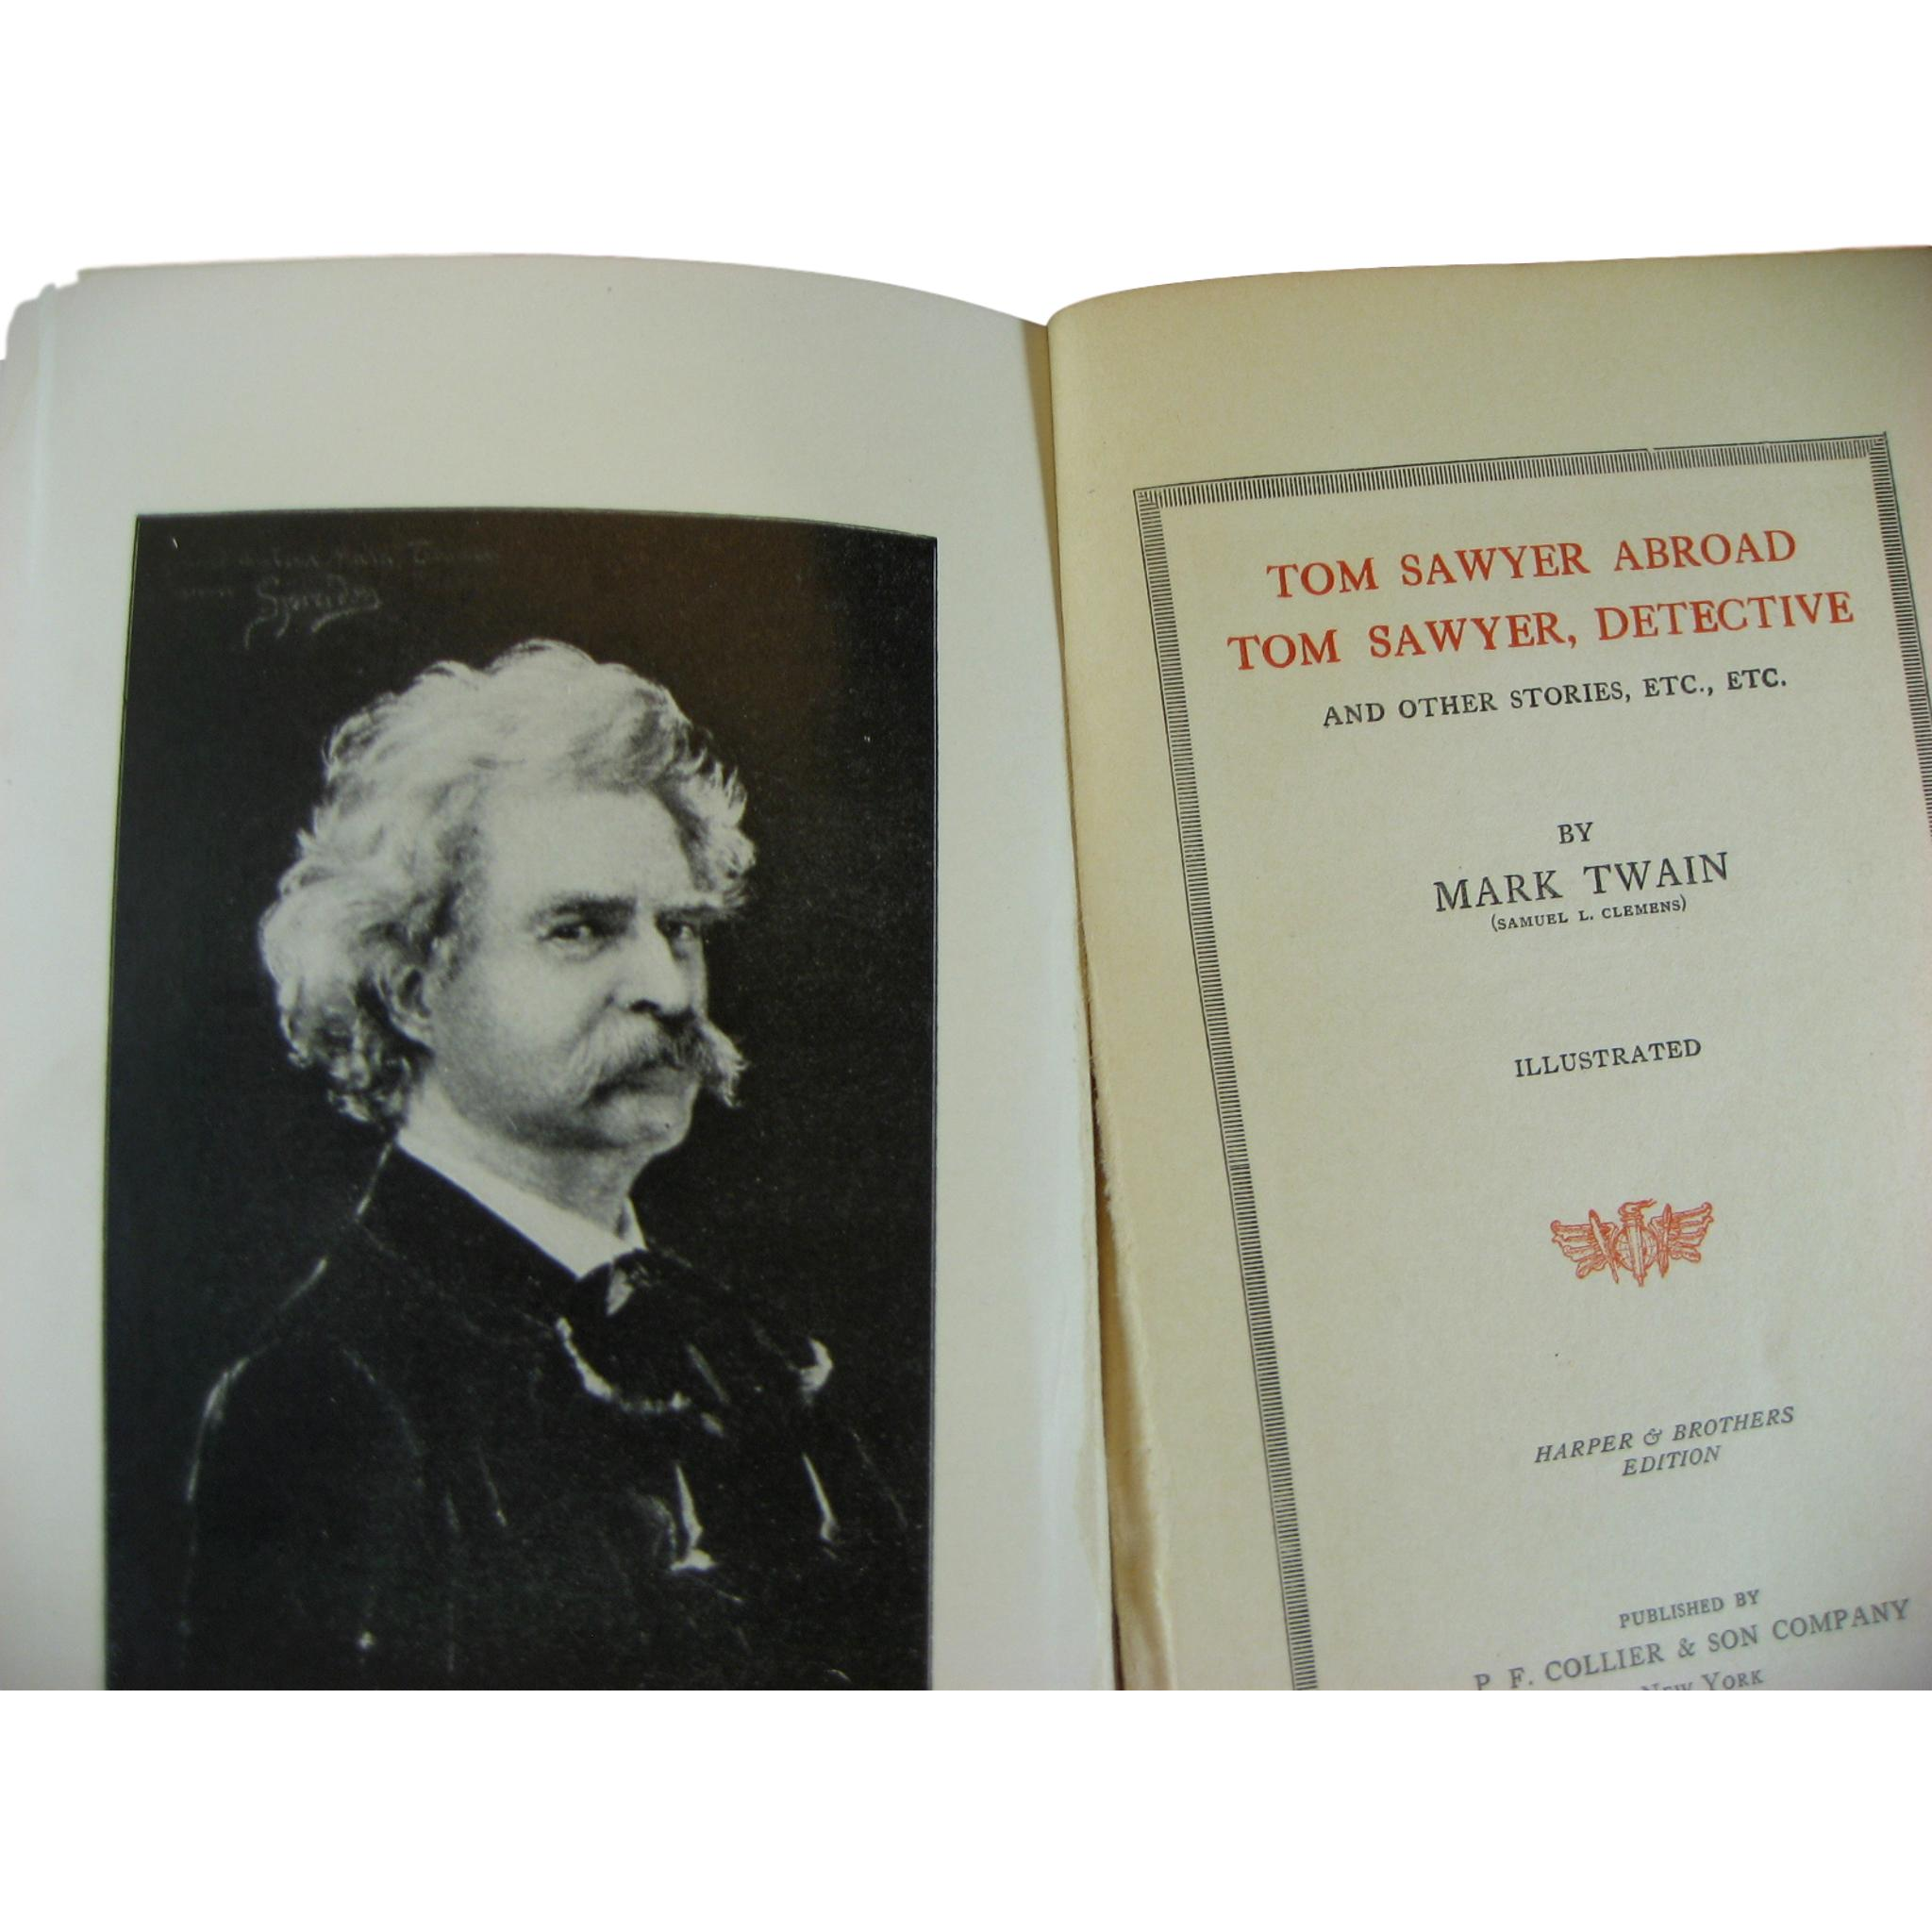 Mark Twain Book Set for Decorative Shelf Decor, S/7 - Decades of Vintage